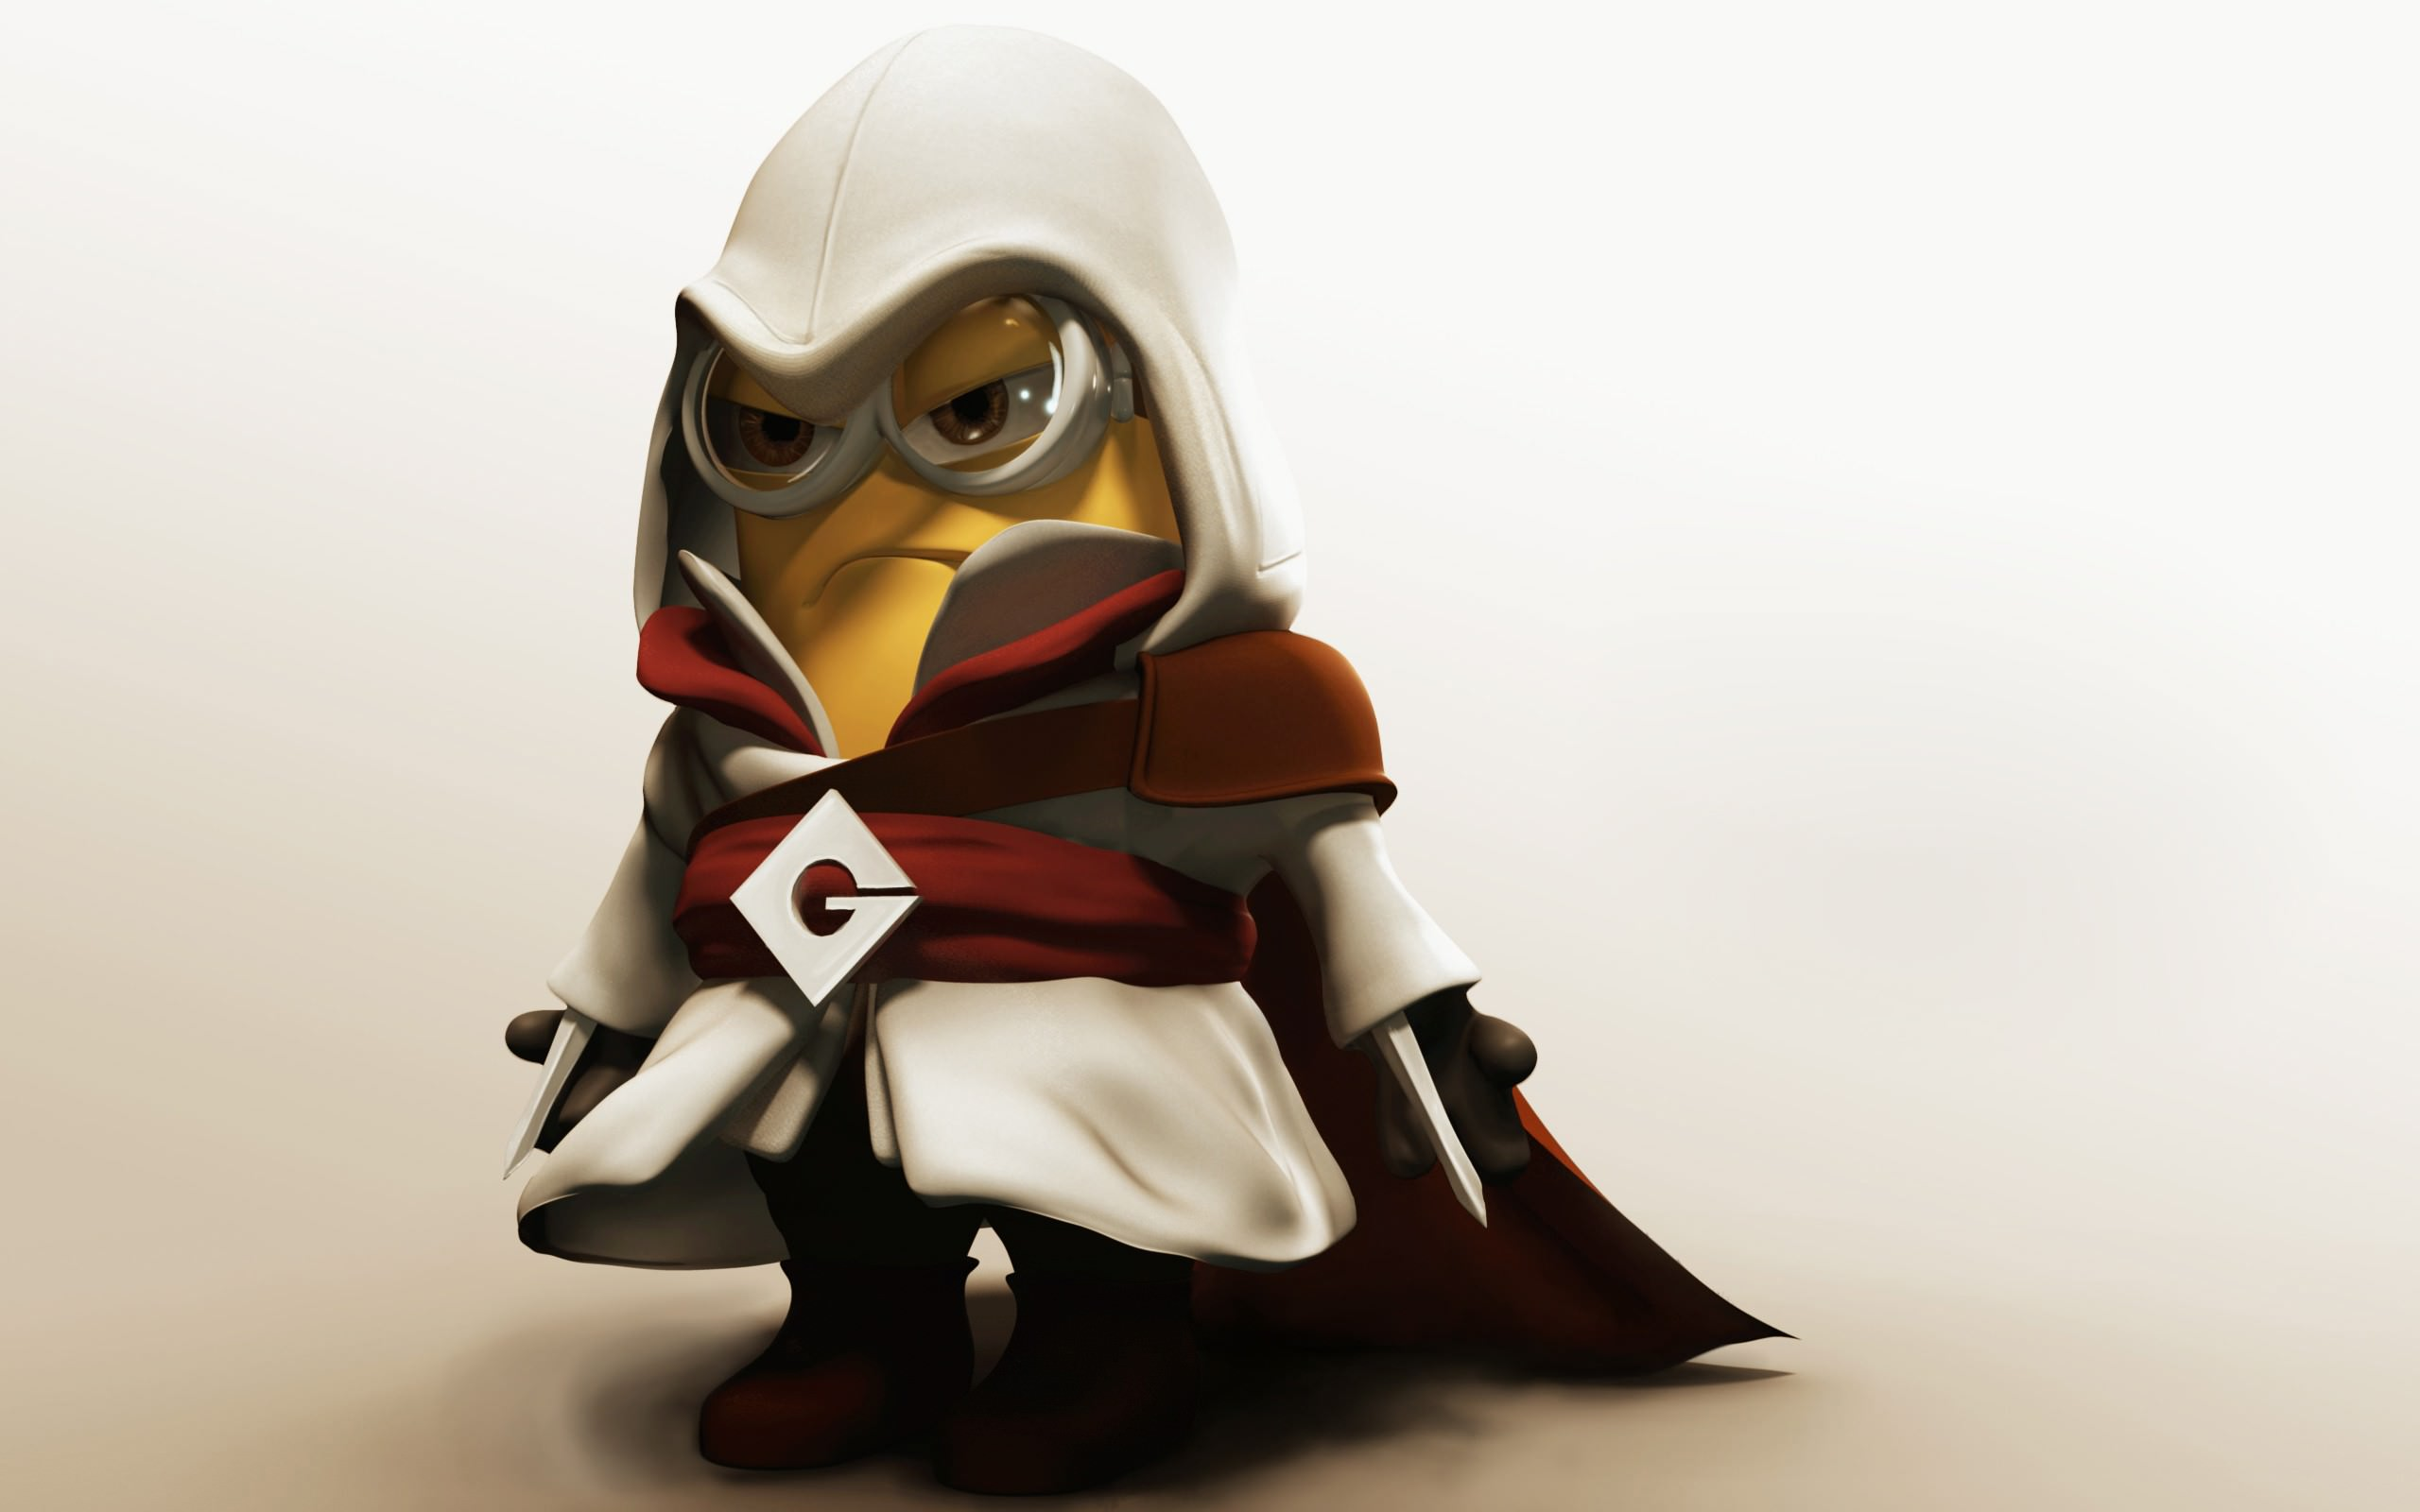 Minion in Assassins Creed Costume Wallpaper